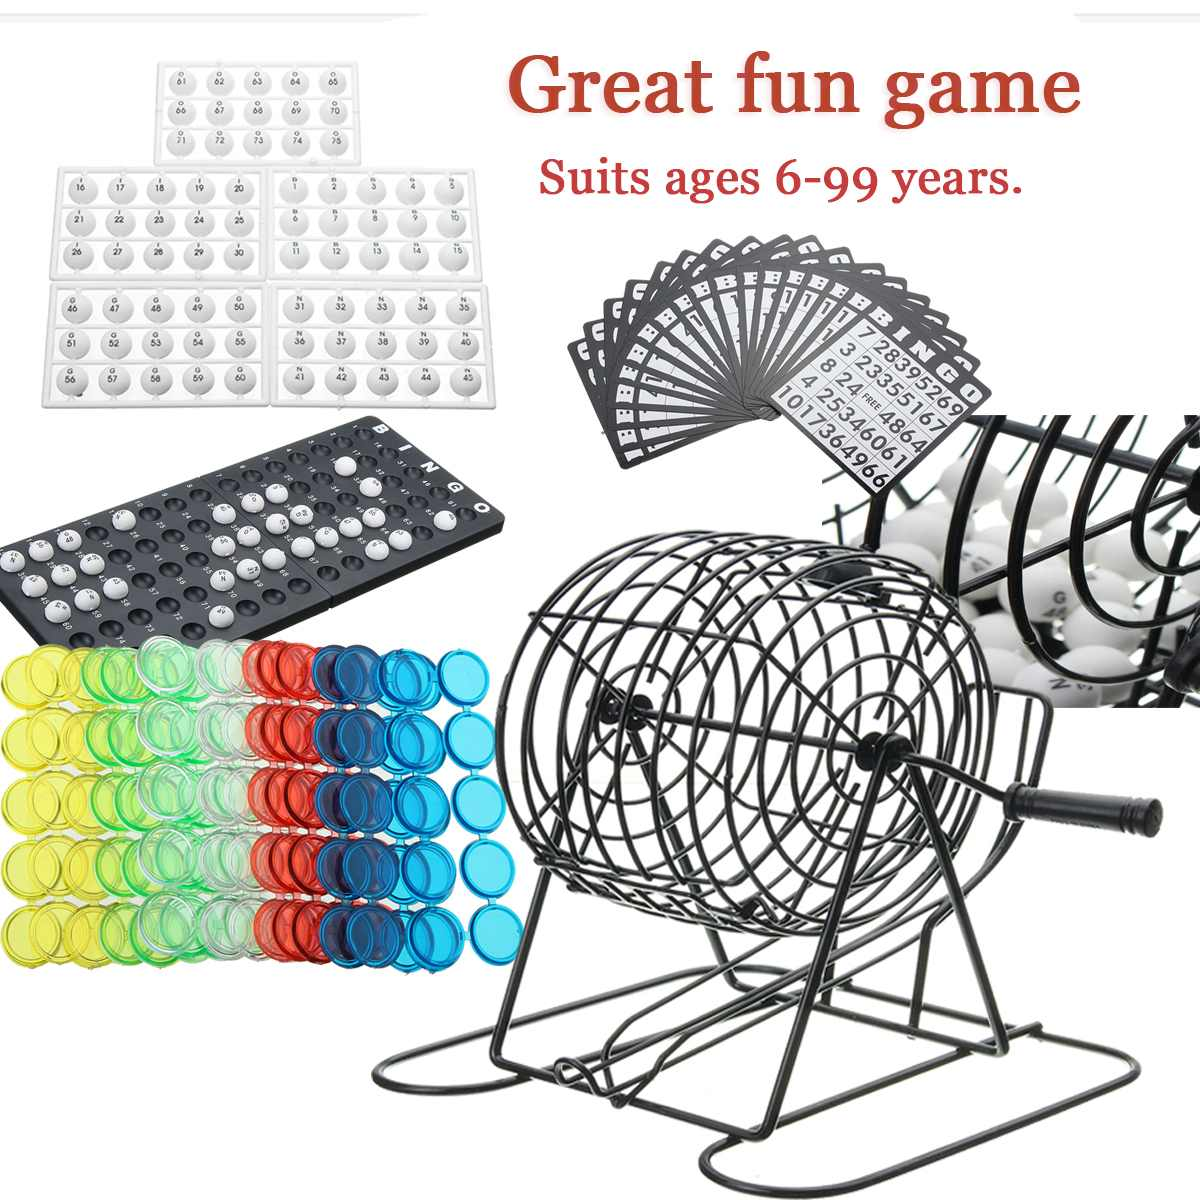 Classic Bingo Lotto Lottory Rotary Cage Home Party Board Toy Xmas Gift 48